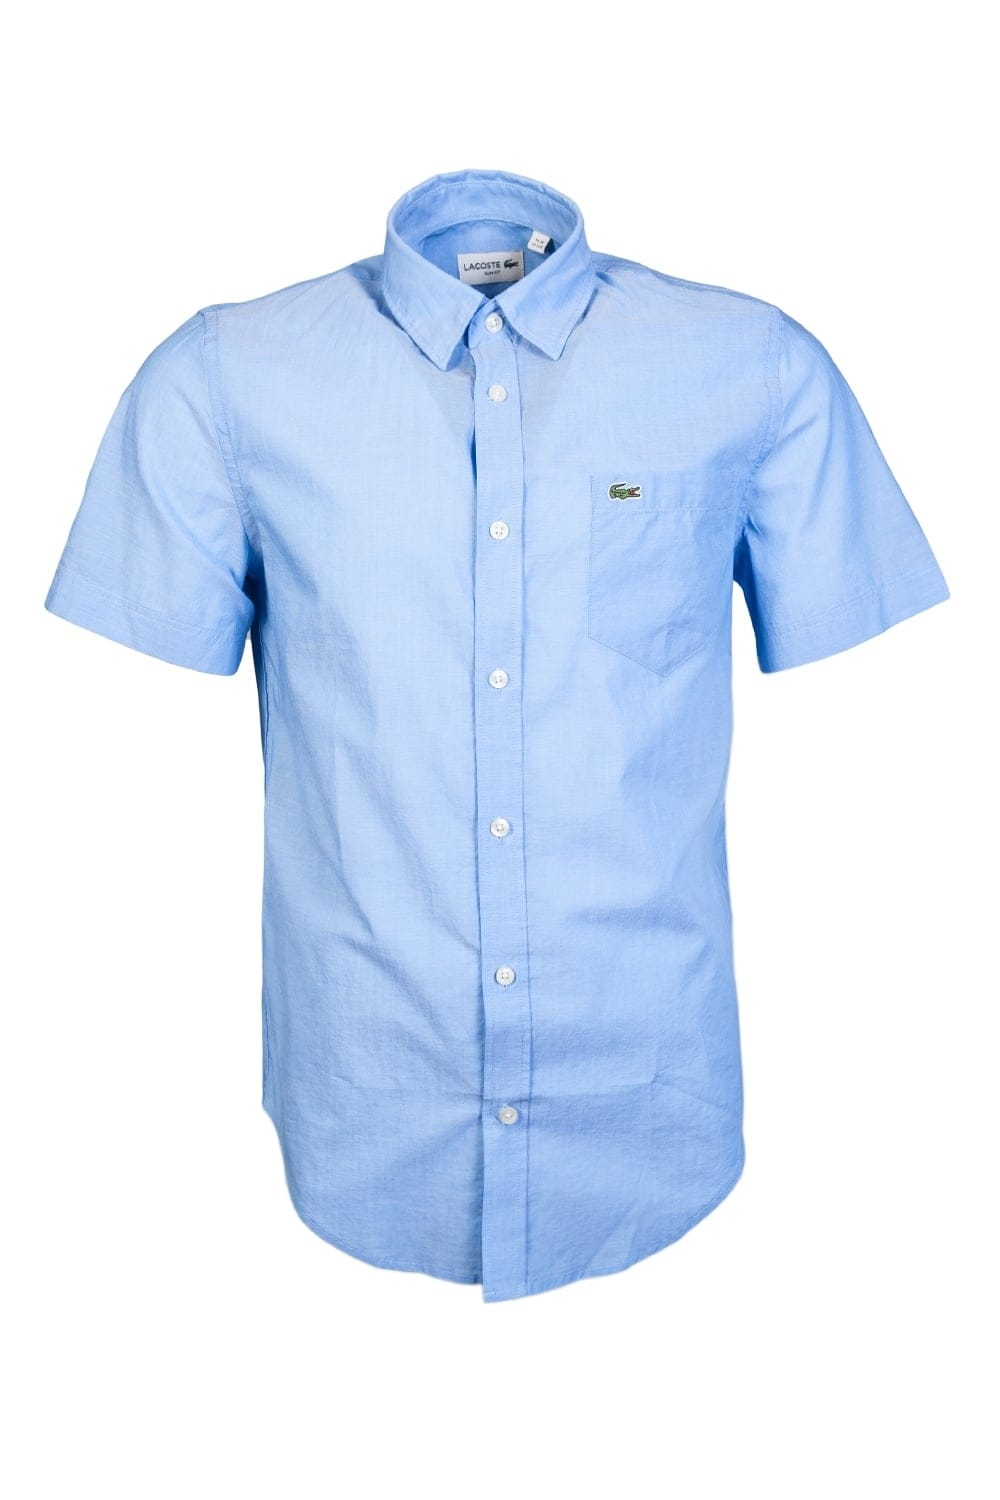 Lacoste short sleeve shirt ch3943 w05 clothing from sage for Short sleeve lacoste shirt